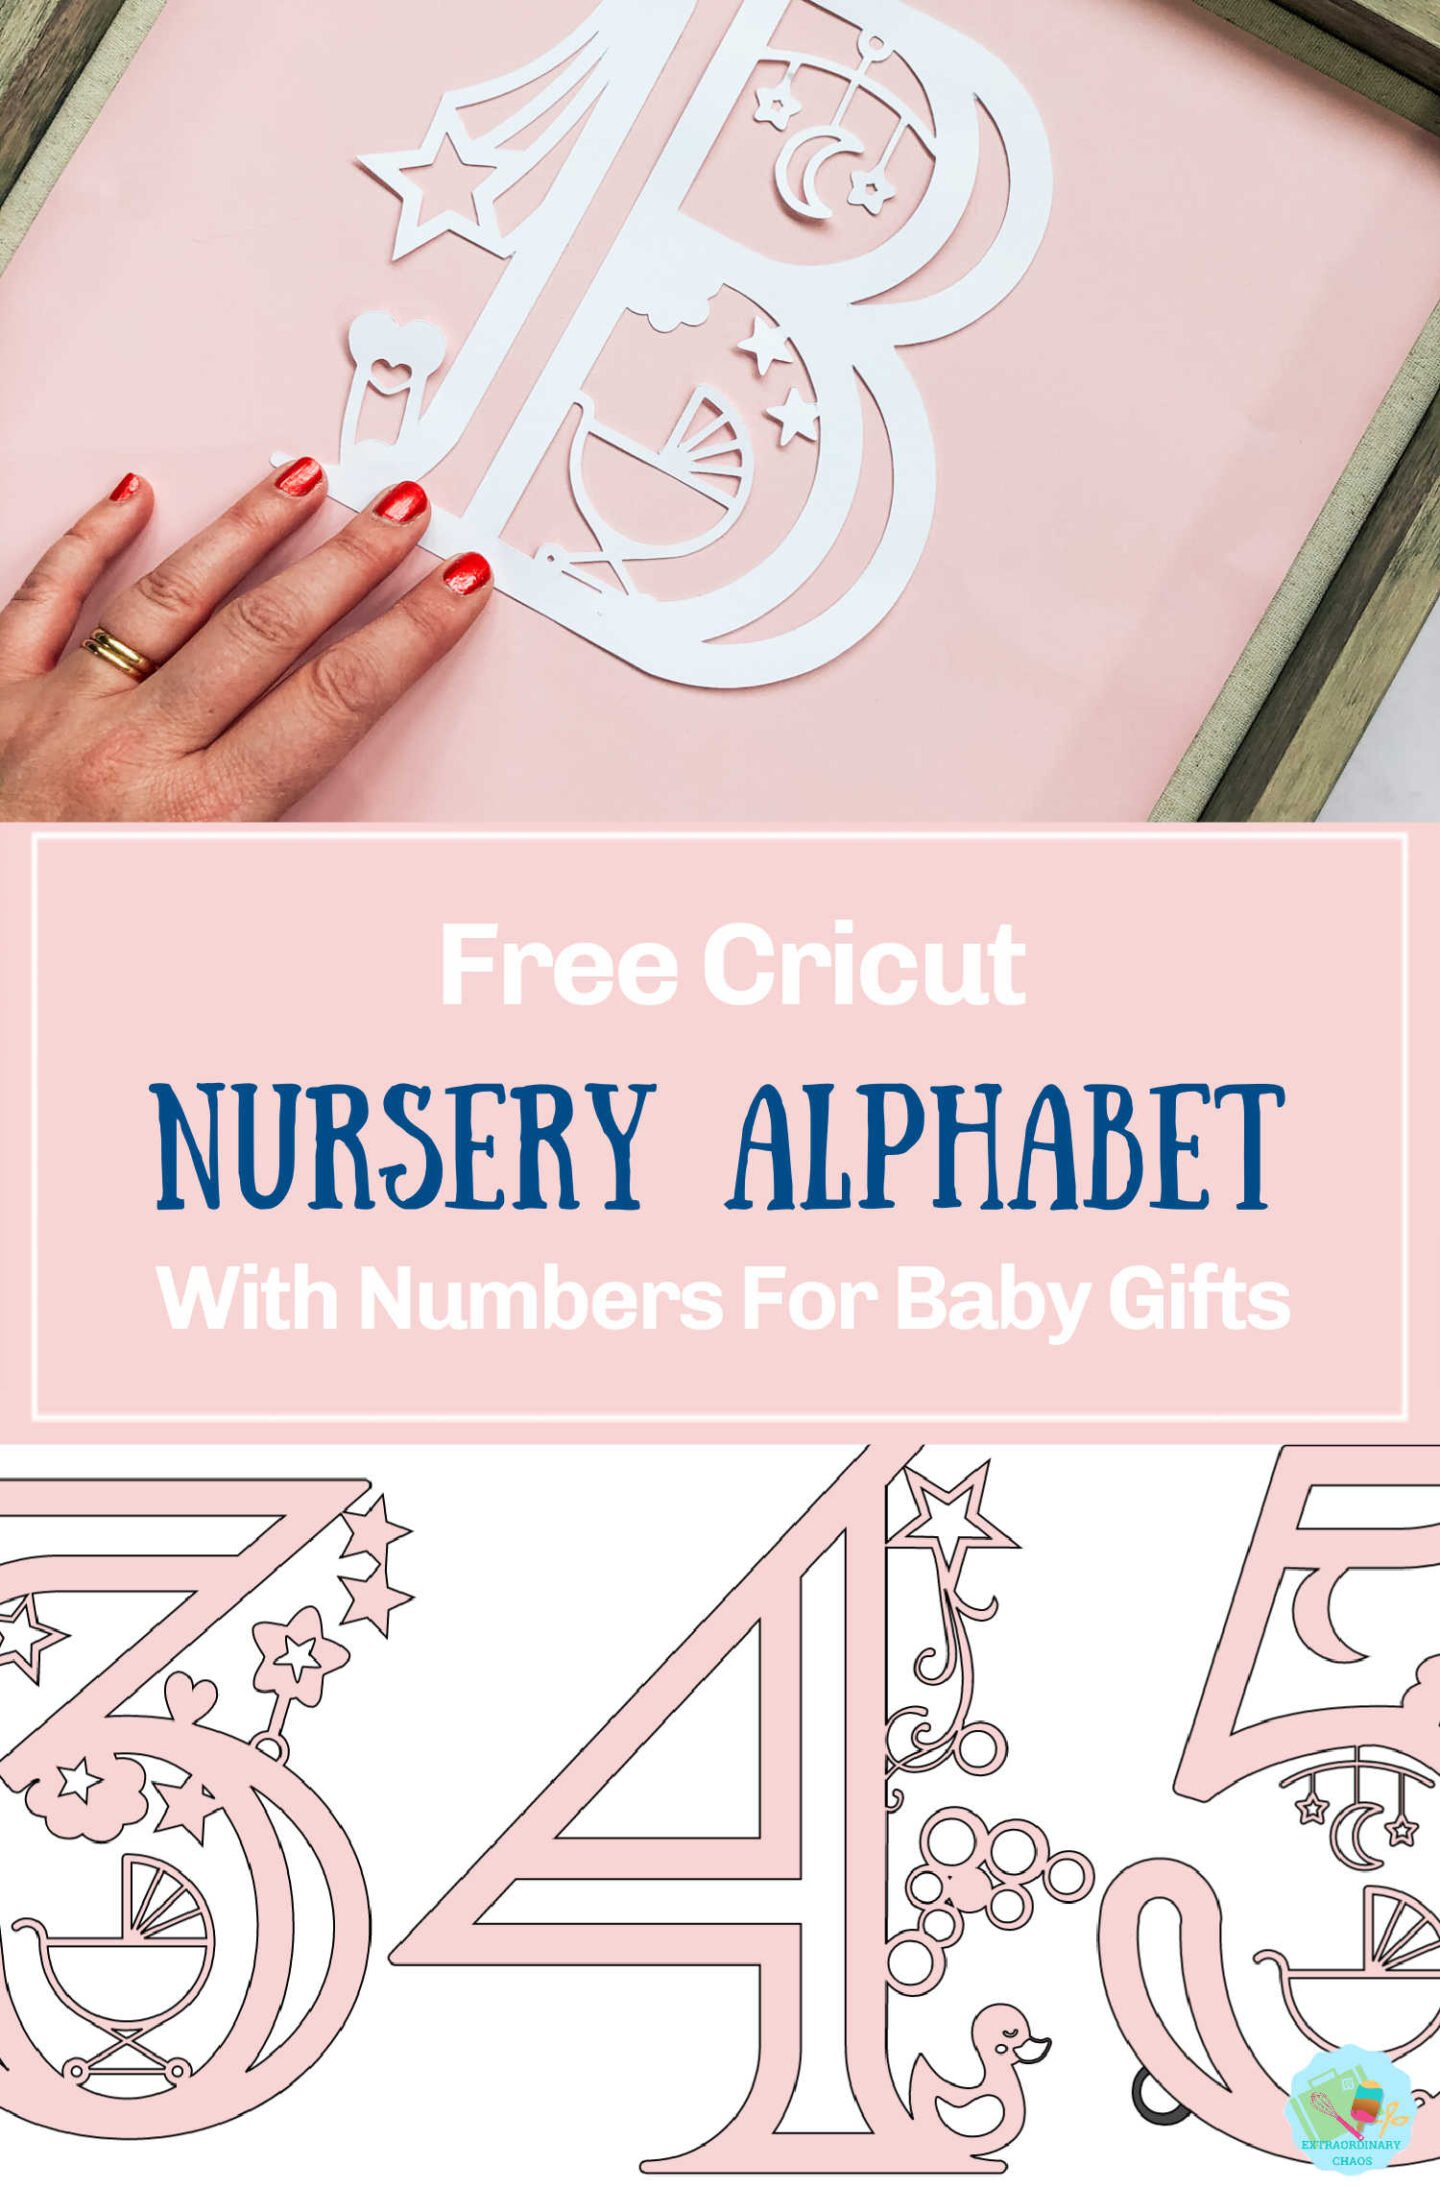 Free Cricut Baby Alphabet With Numbers For Baby Showers and nursery decor-2